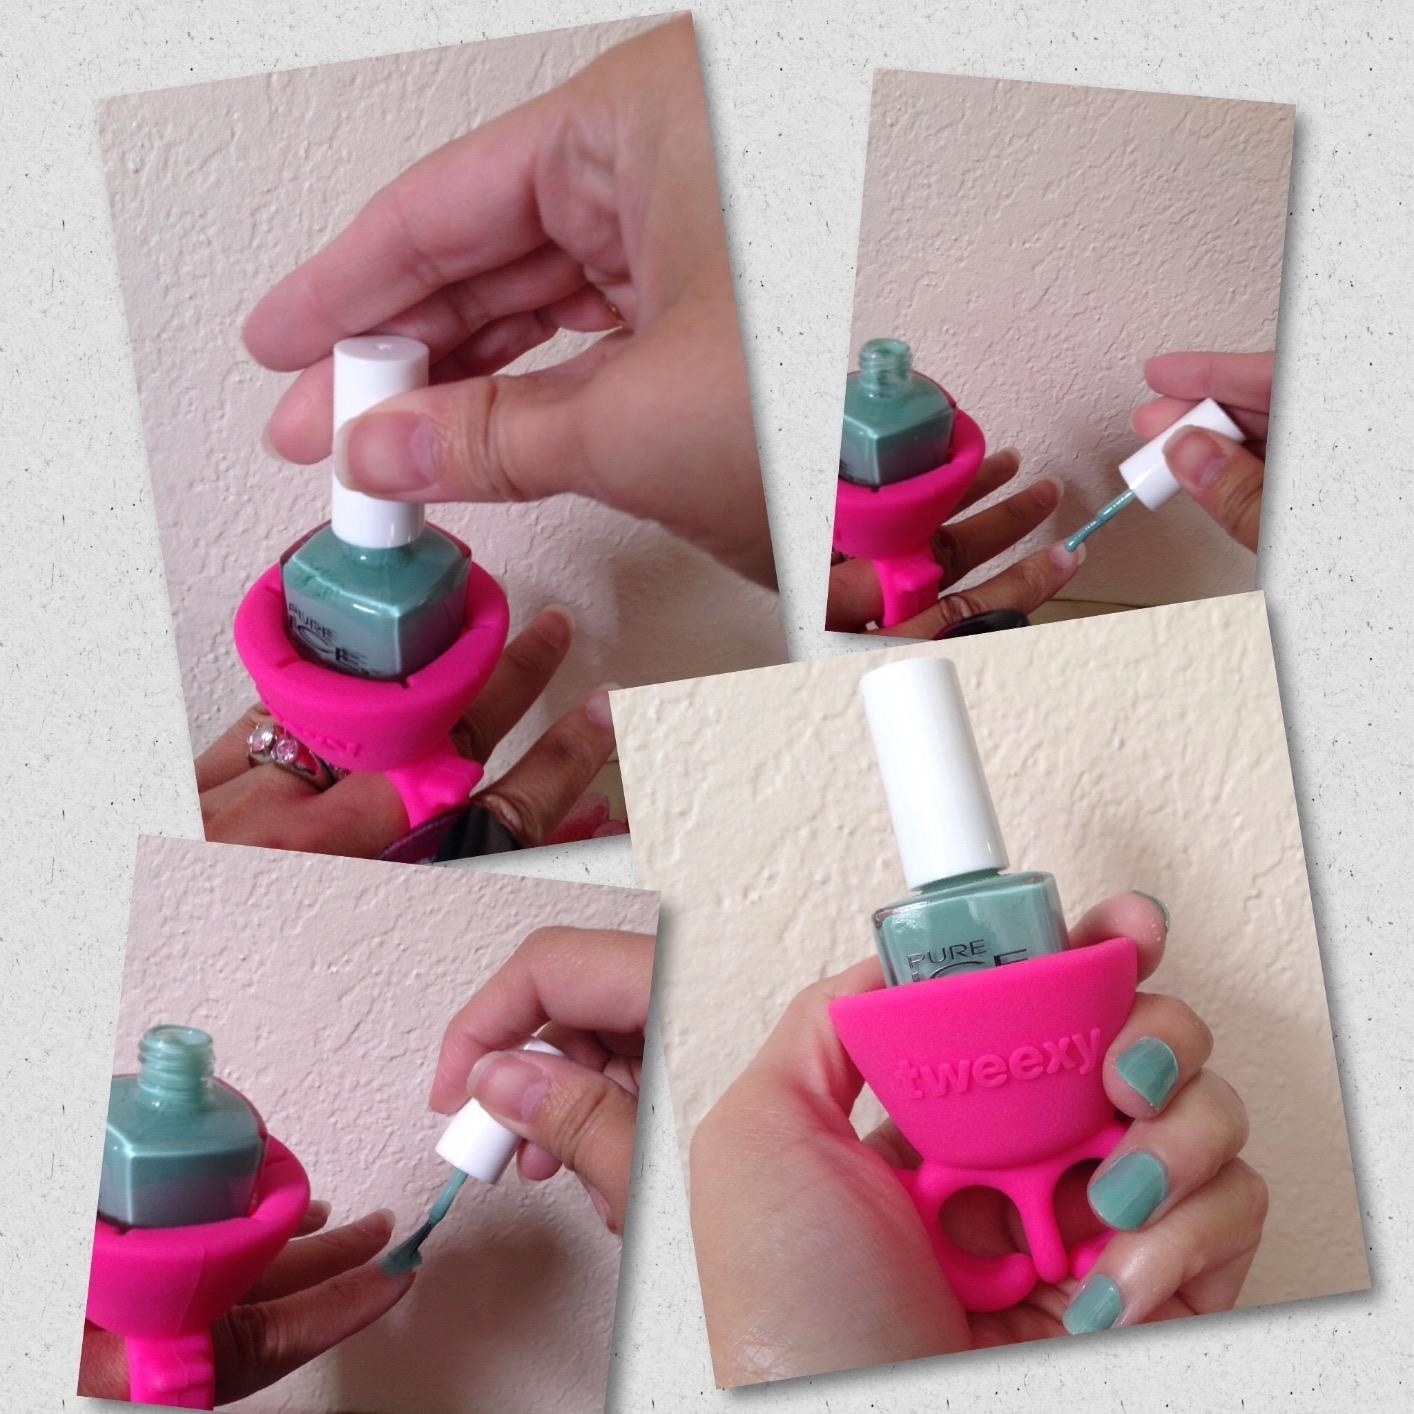 Reviewer using product to paint nails